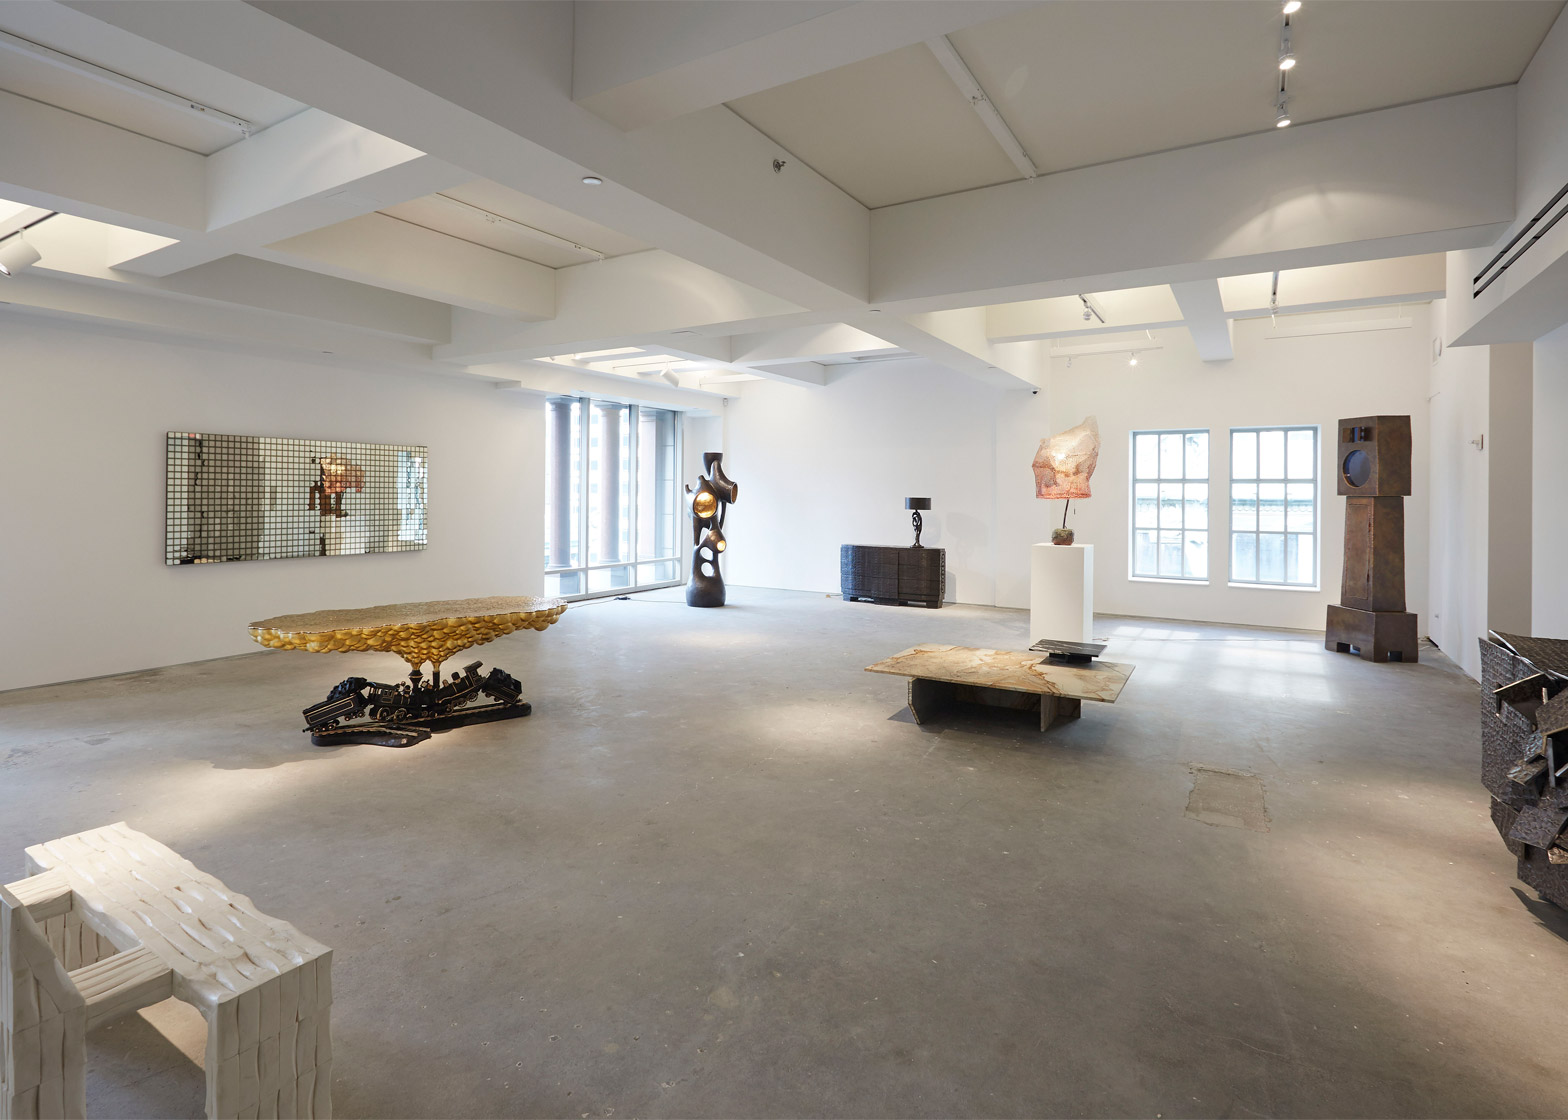 Carpenters Workshop gallery in New York